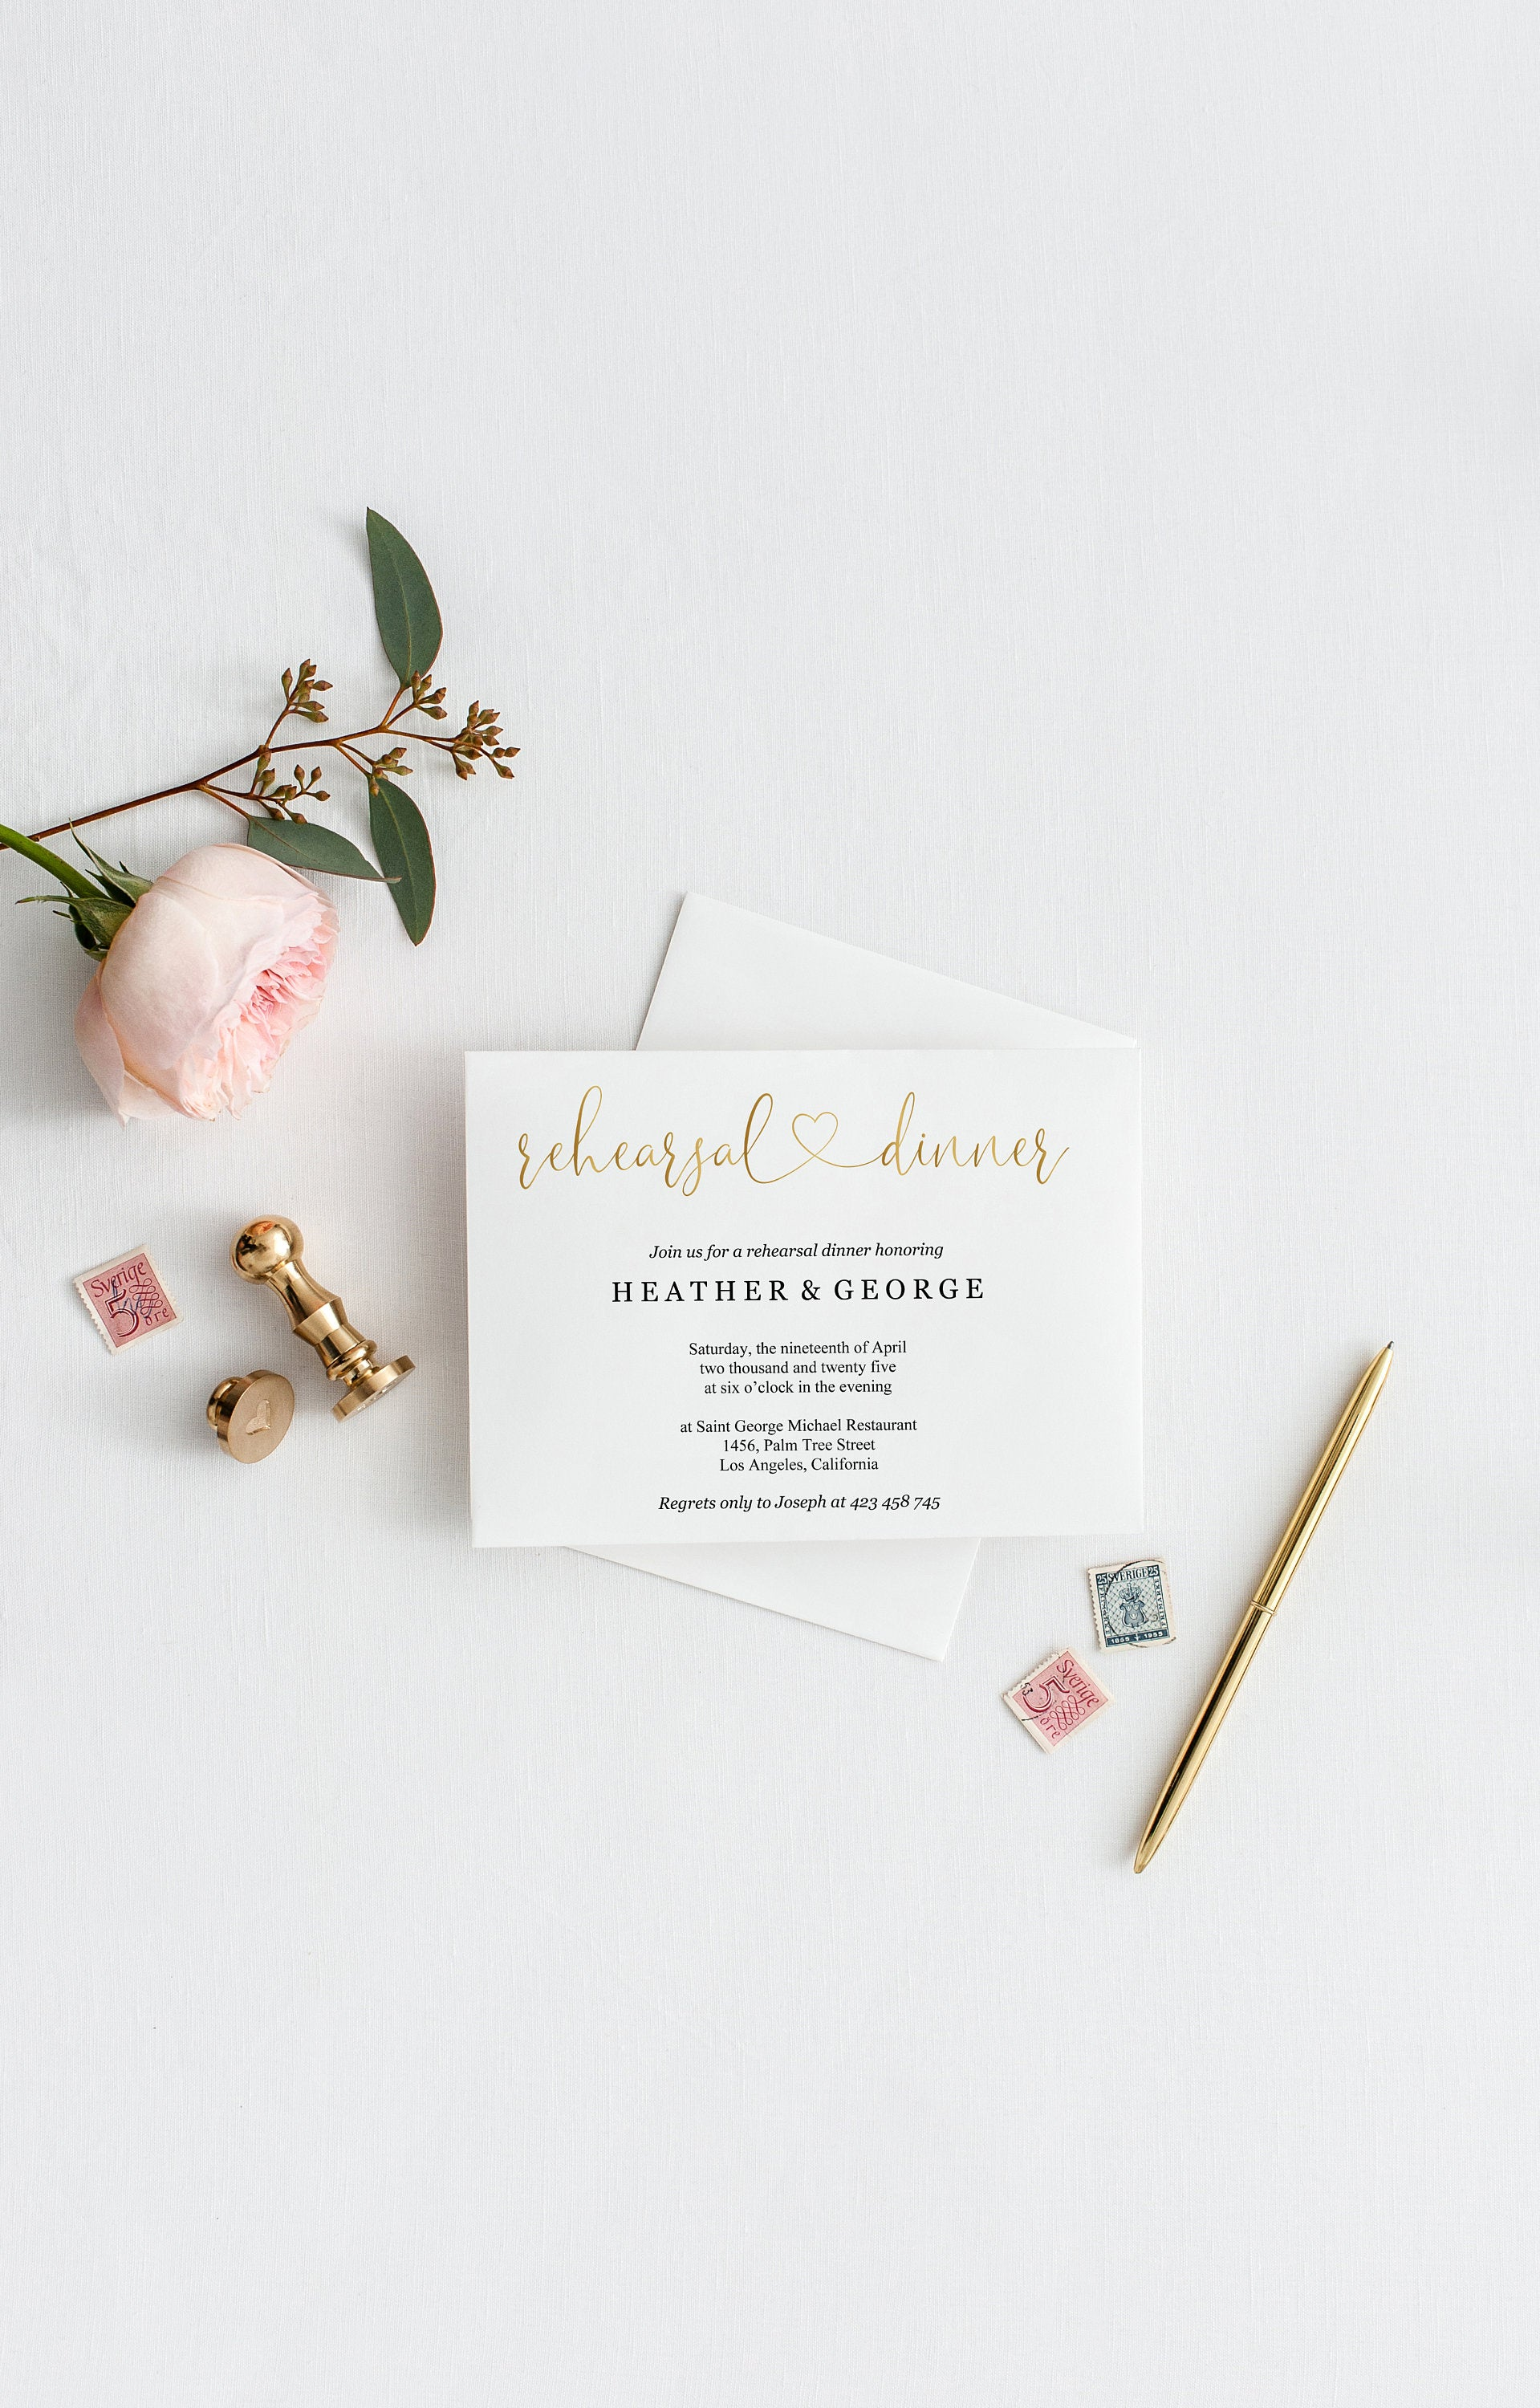 Rehearsal Dinner Invitation Template Printable Wedding Rehearsal Dinner Invitation Gold Wedding Instant Download  - HEATHER